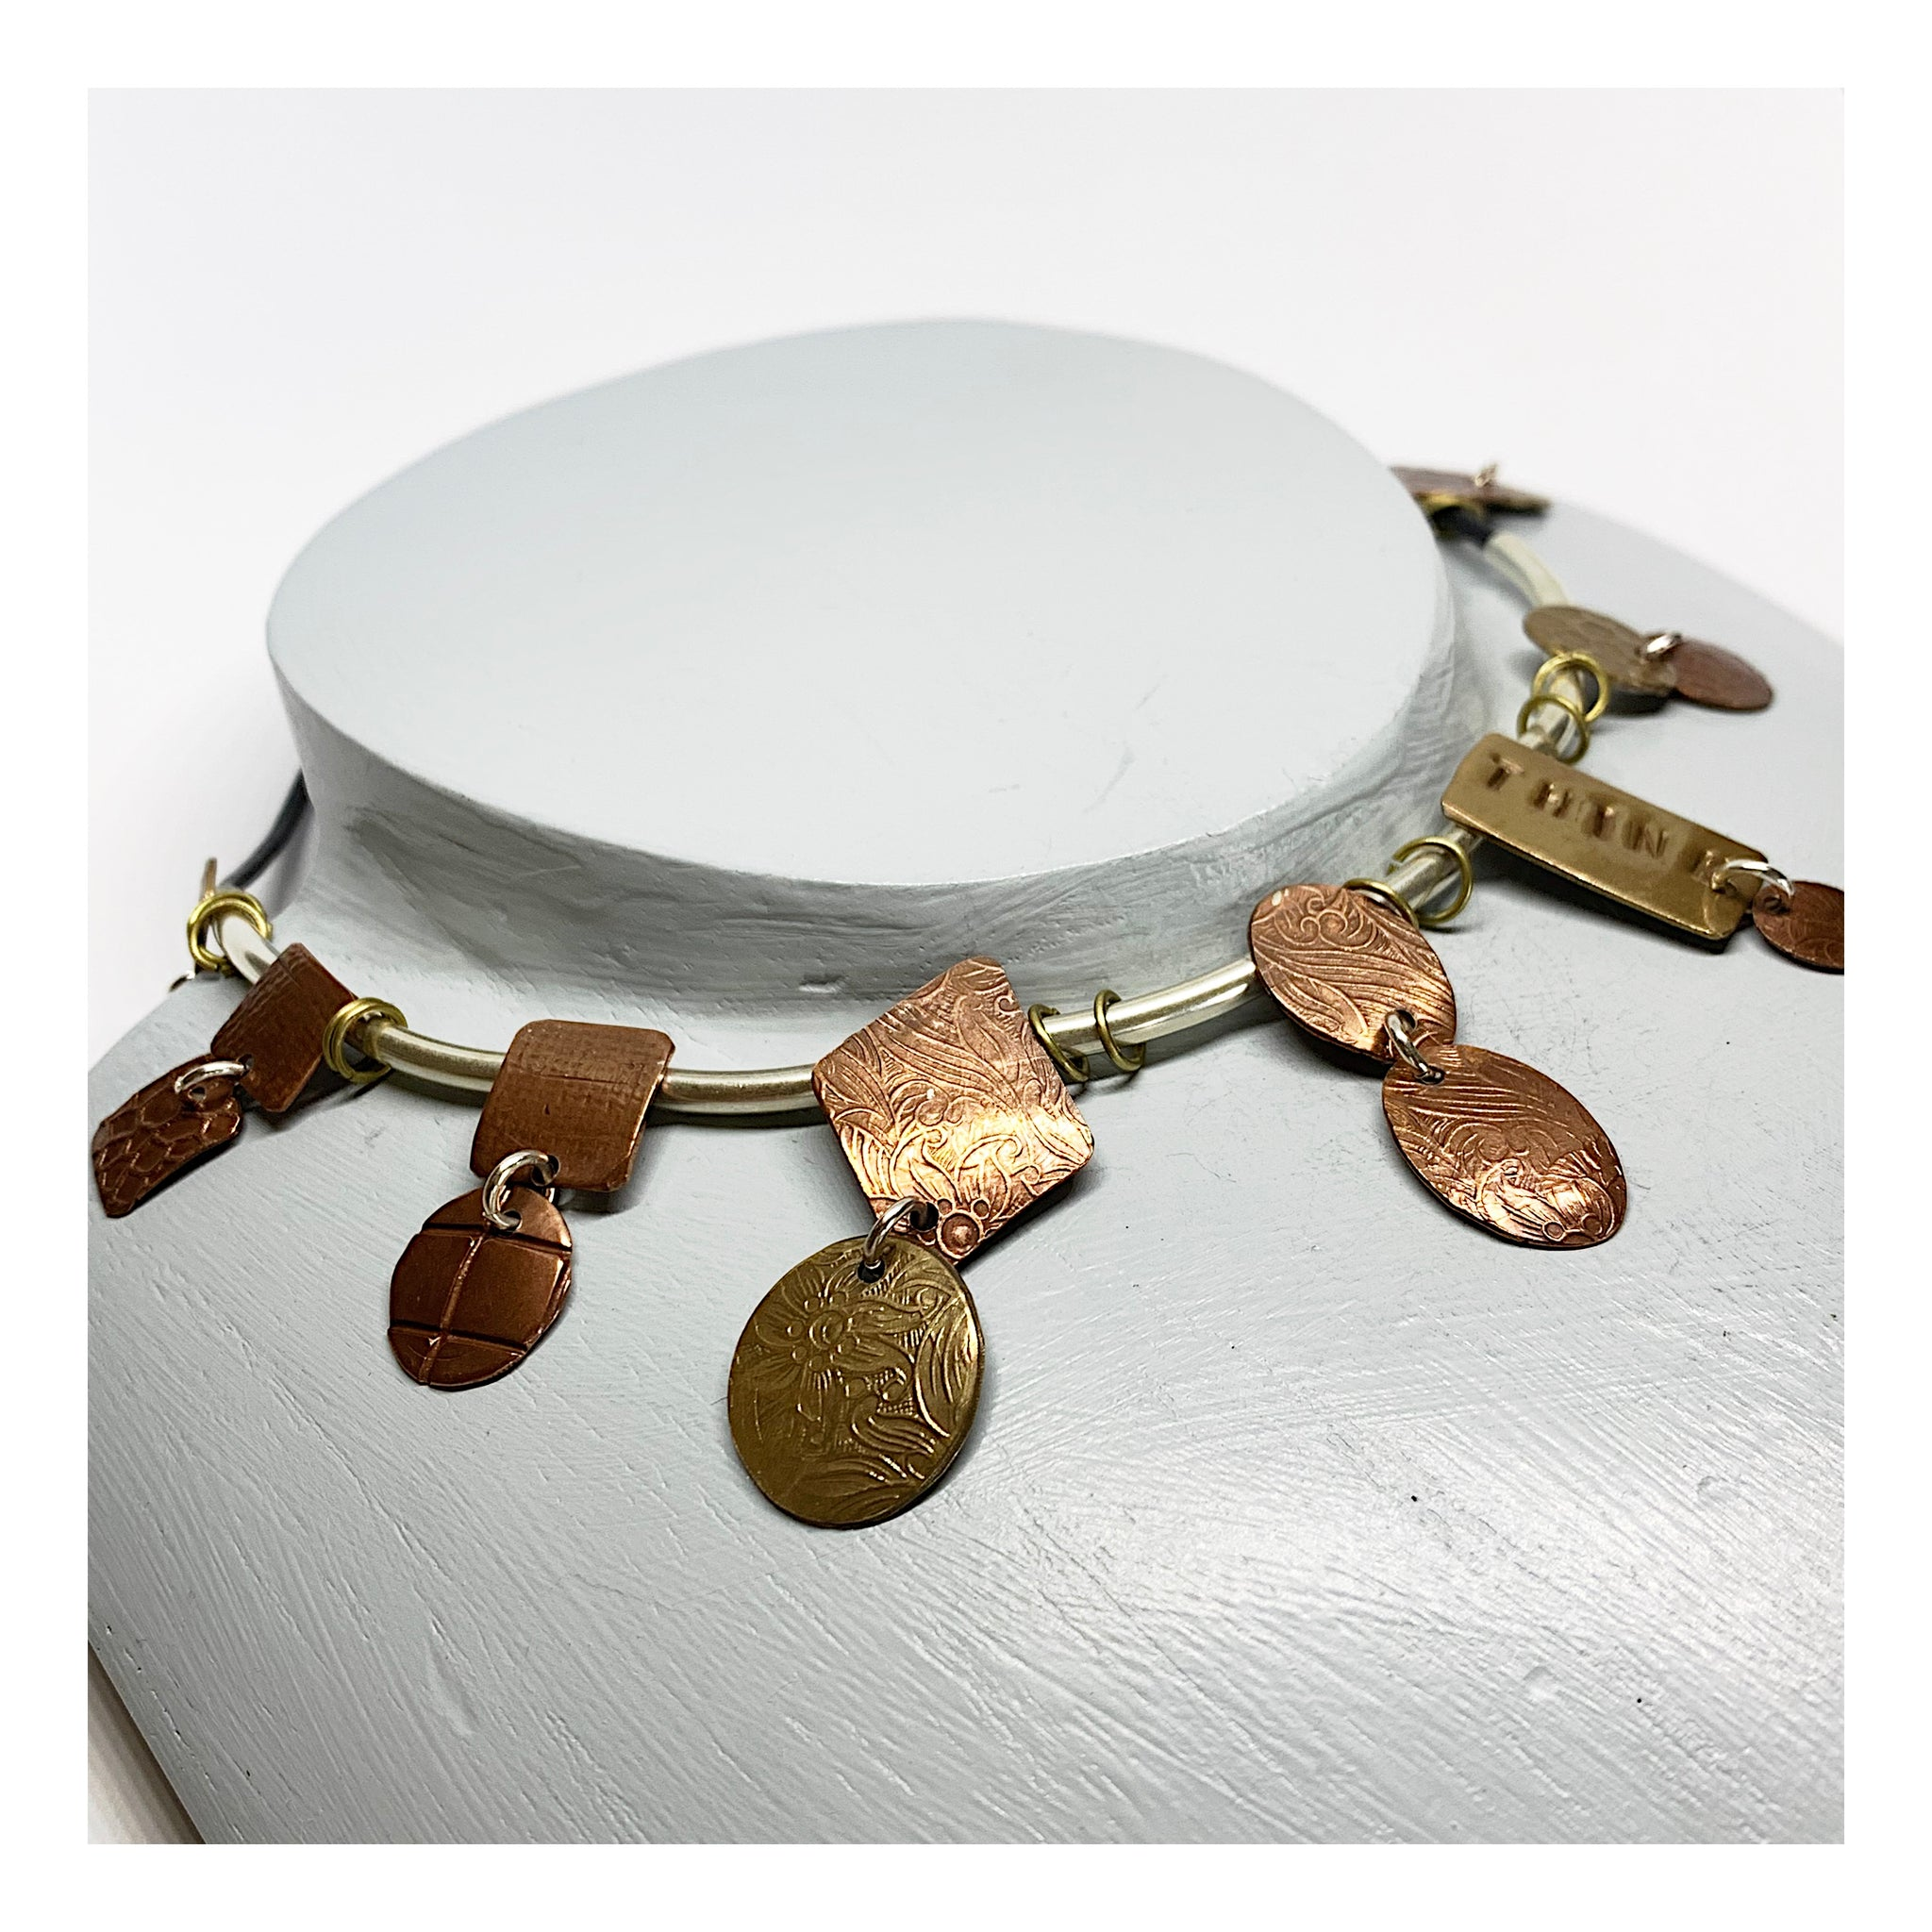 Contemporary Choker in Mixed Metals and Leather - Think Slogan